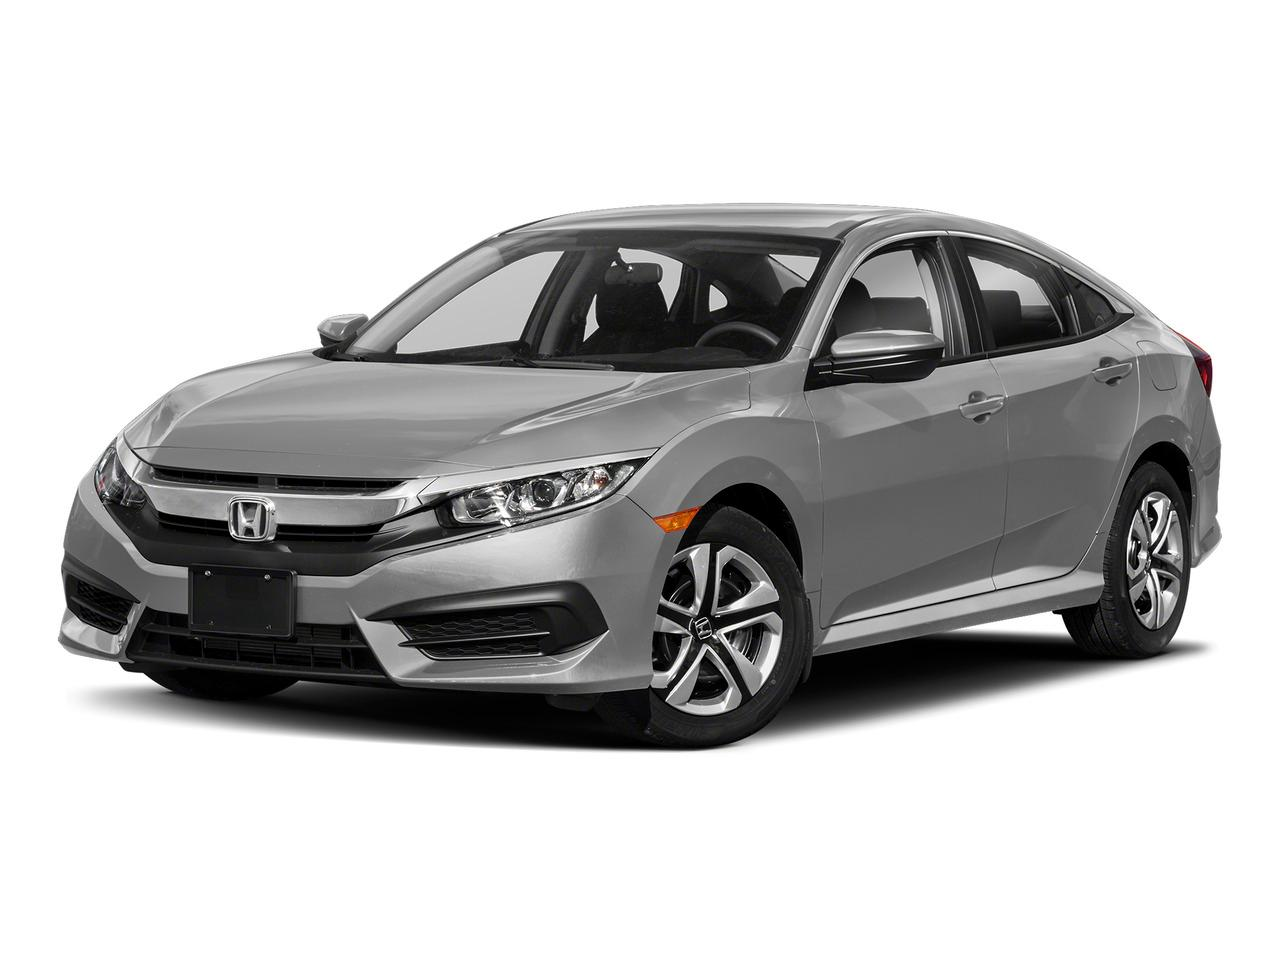 2018 Honda Civic Sedan Vehicle Photo in Appleton, WI 54913